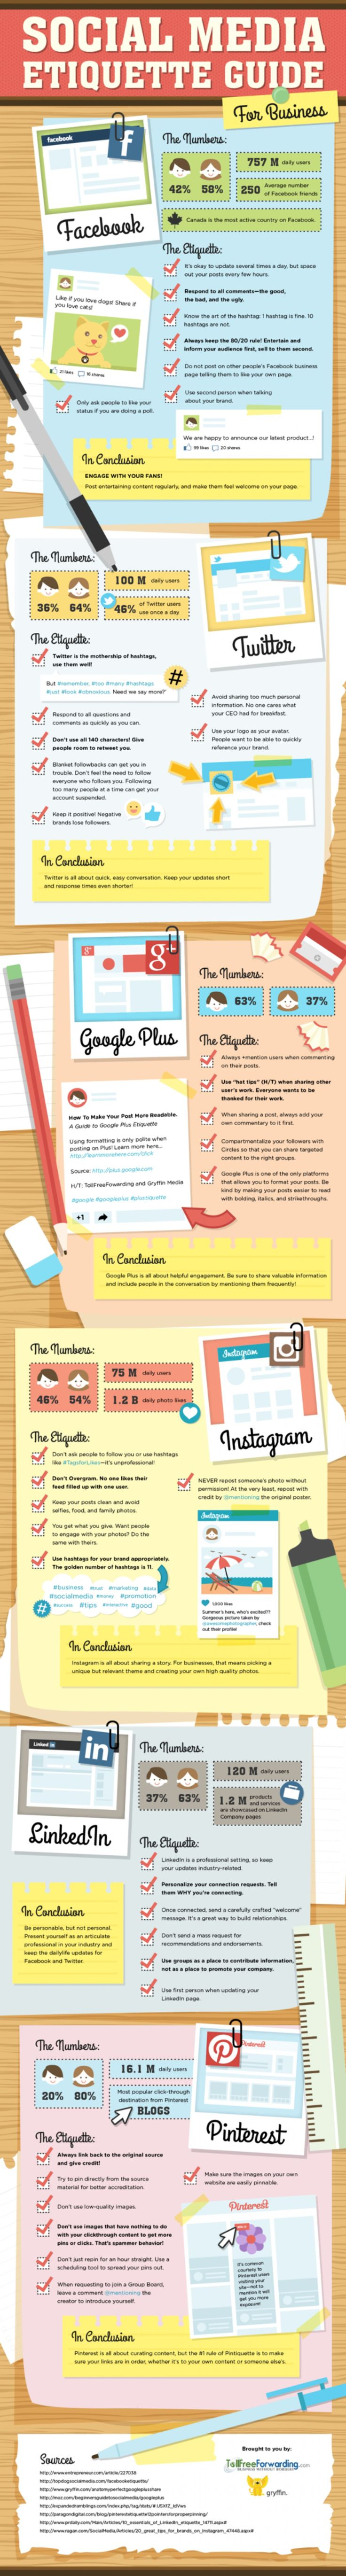 Picture is worth a thousand words social construction zone -  Socialmedia Etiquette Guide For Business